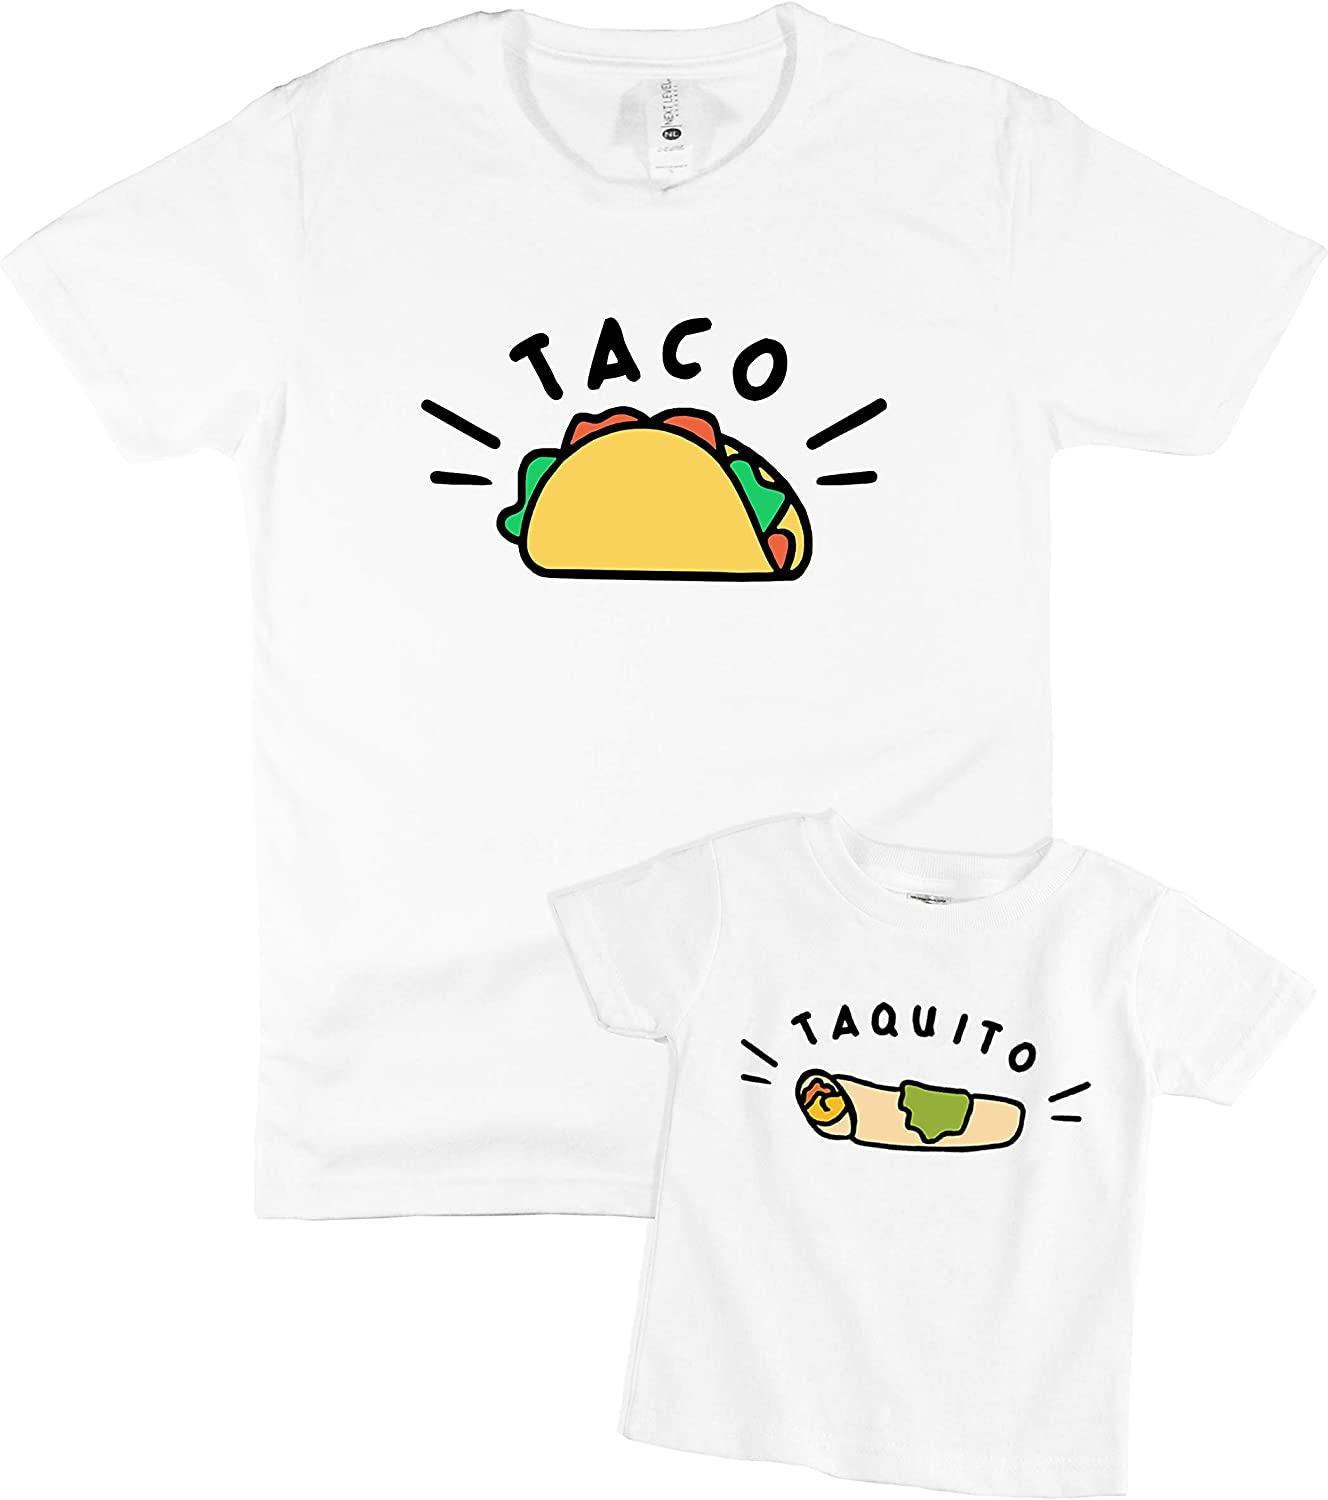 The Spunky Stork Taco & Taquito Father and Son Matching Family Outfits Shirts